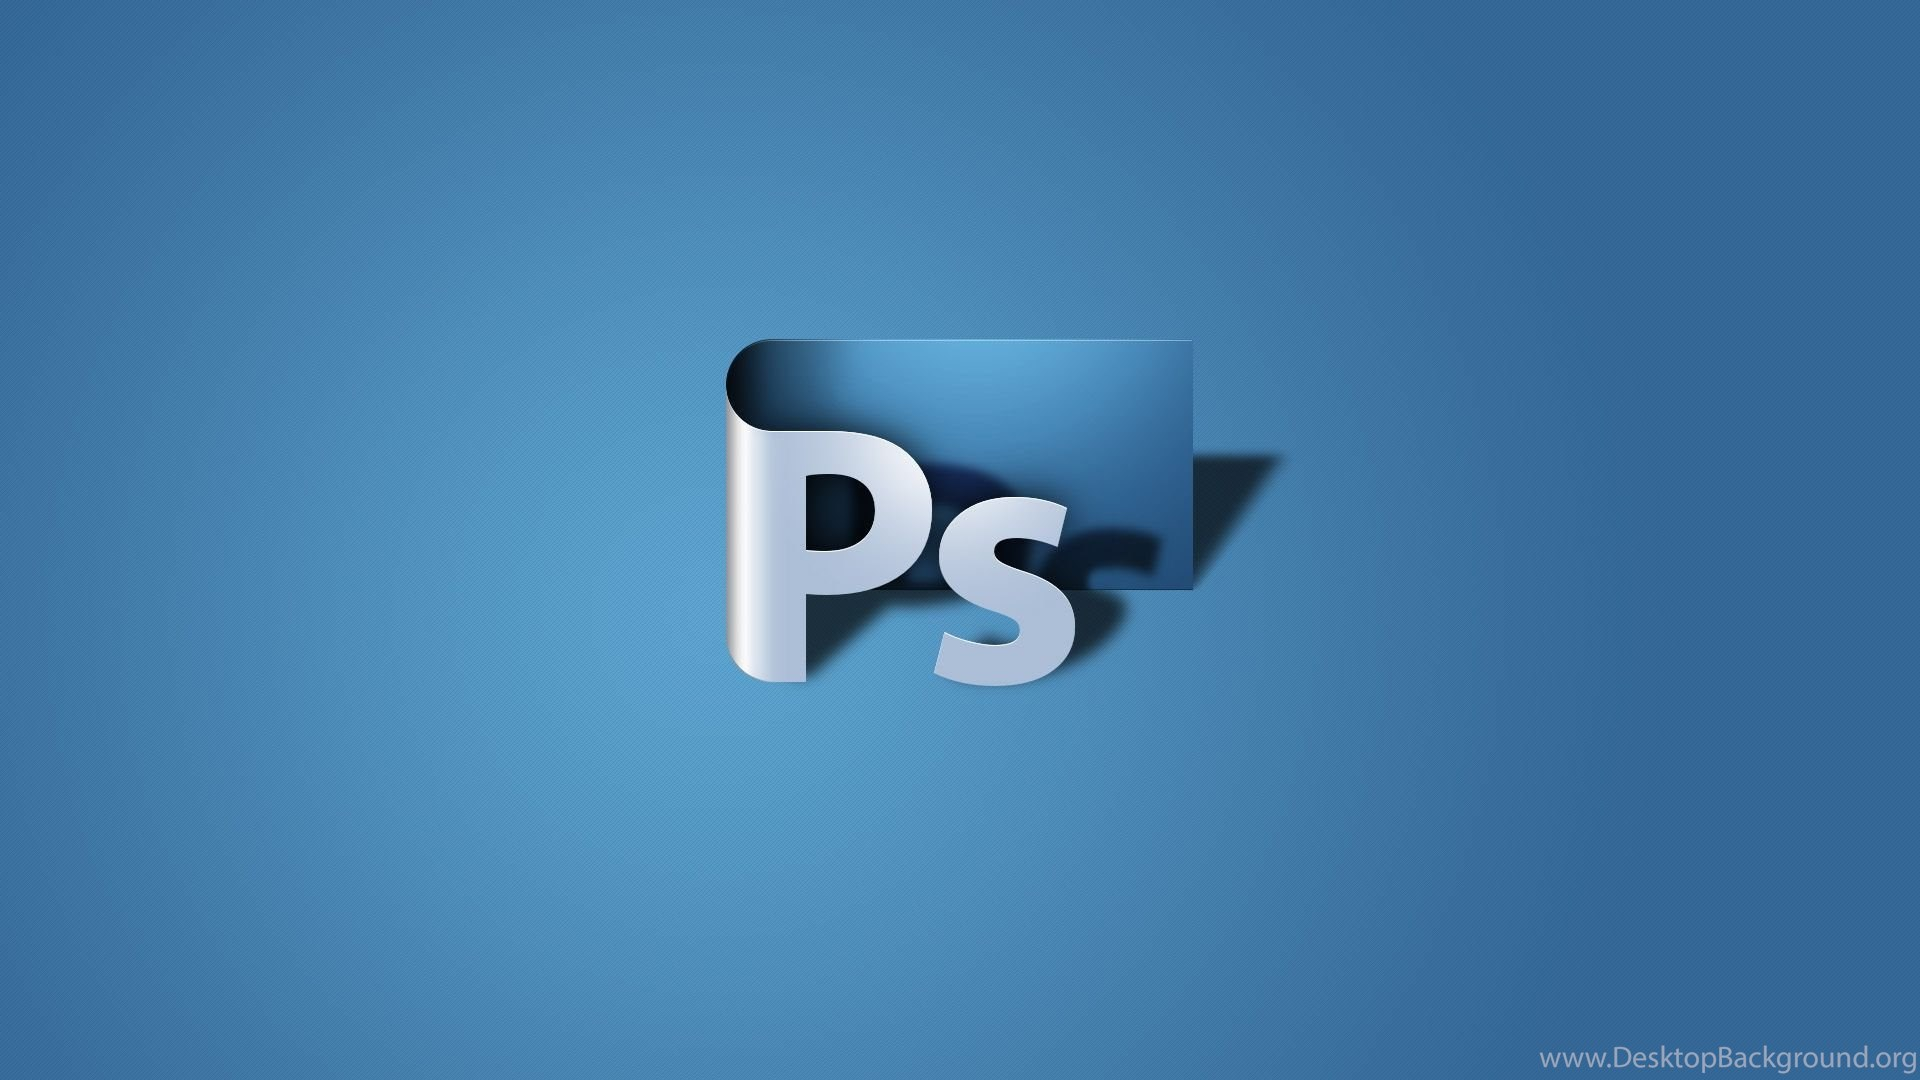 photoshop icon 3d art shadow blue background hd wallpaper